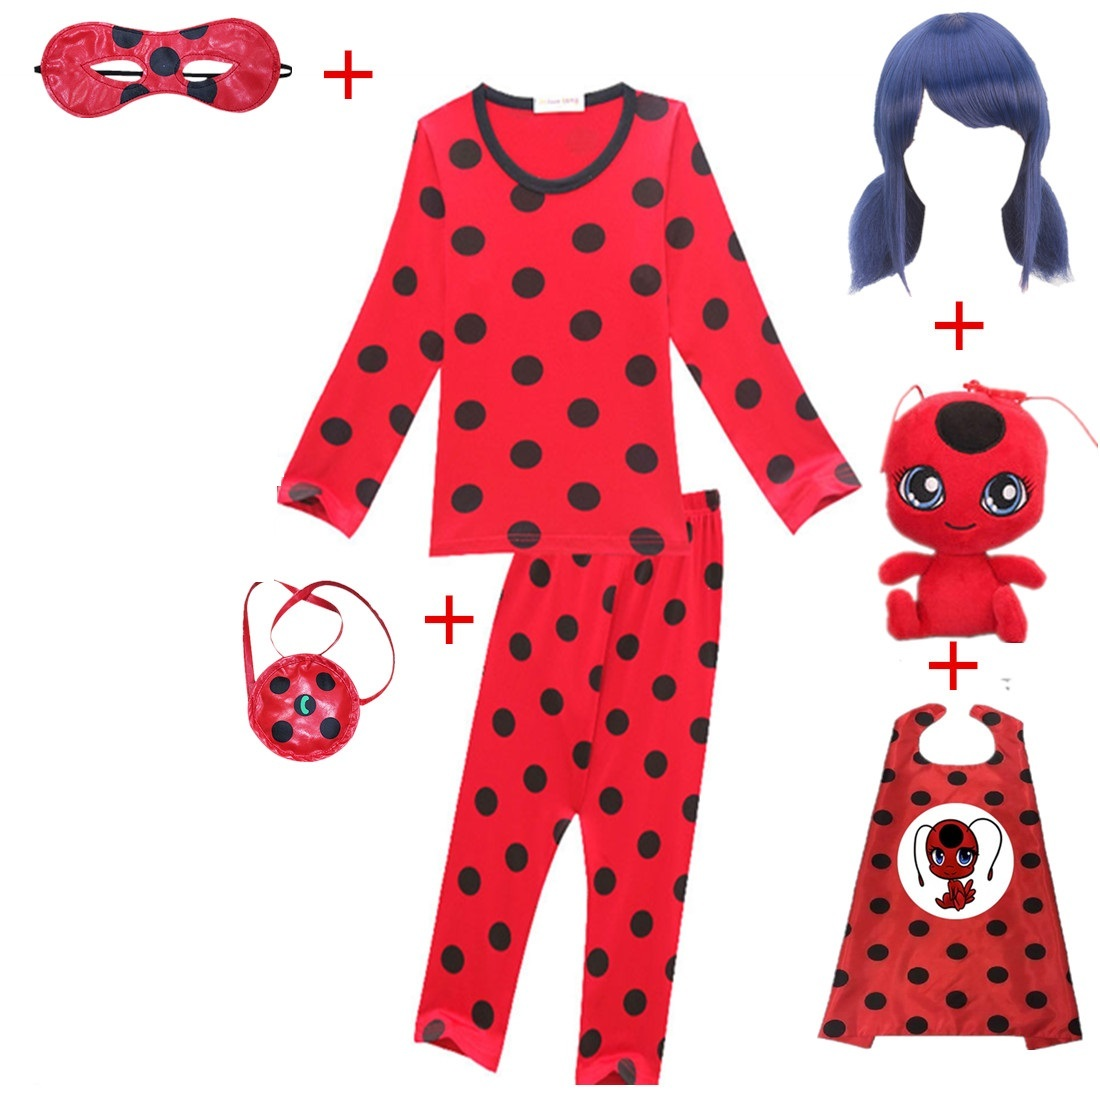 2019 Carnival Clothing Lady Bug Cosplay Sets Ladybug Halloween Christmas Party Custumes With Wig Mask Kids Marinette Girls Suit